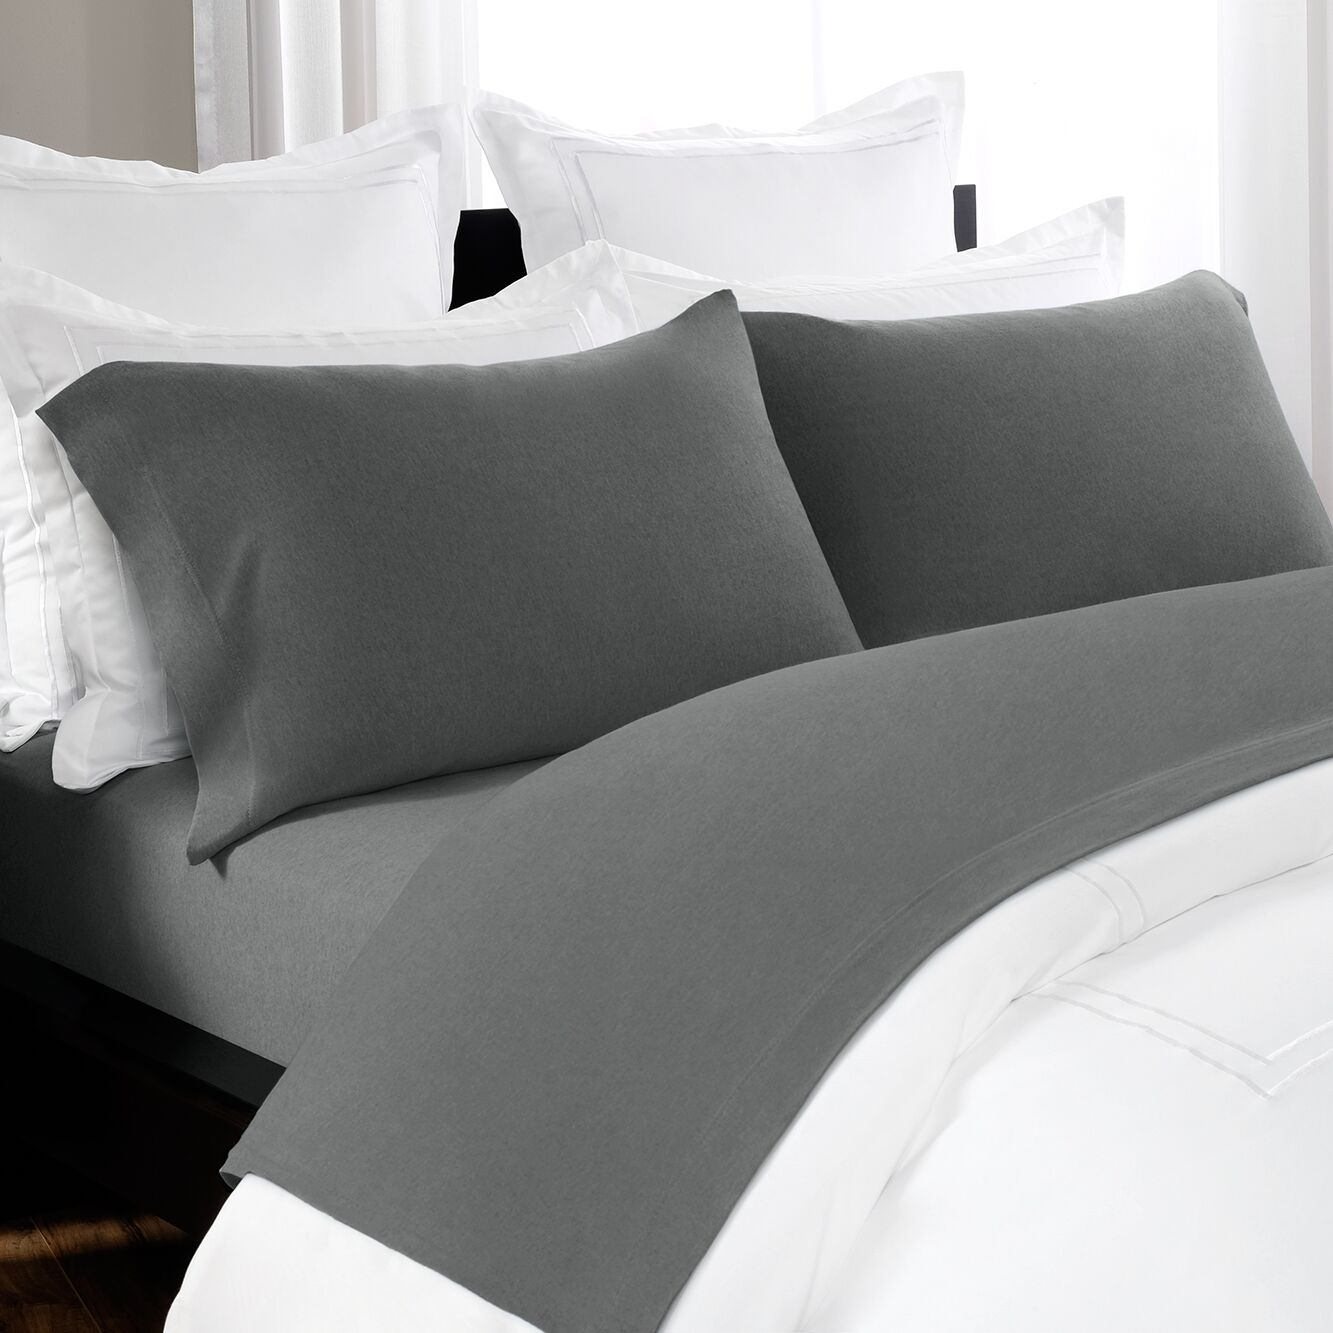 100% Cotton Heathered Jersey Sheet Set Color: Charcoal, Size: California King